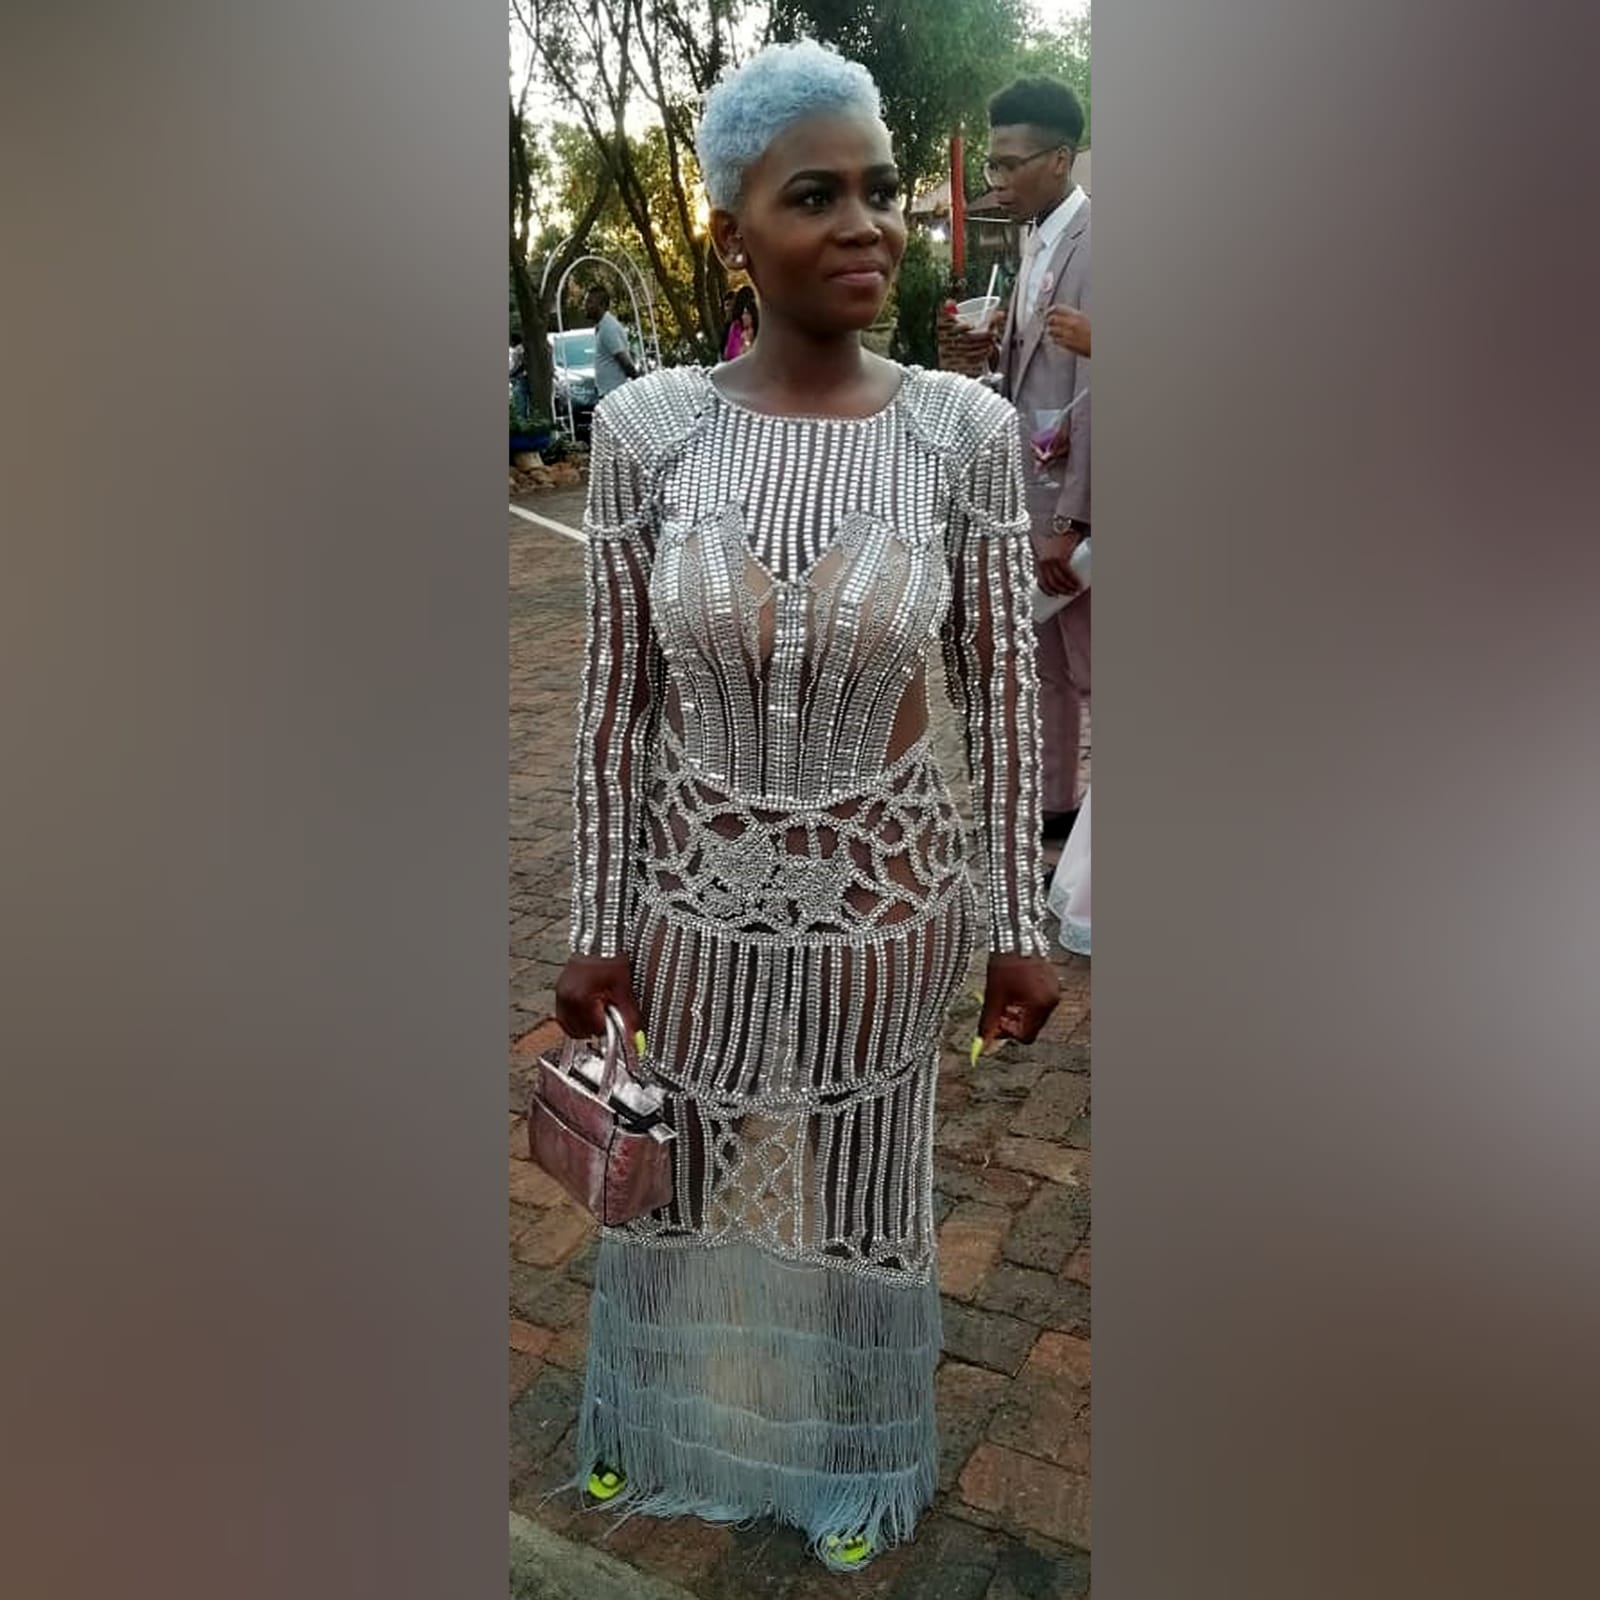 Long sheer fully beaded matric farewell dress with long sleeves 2 long sheer fully beaded matric farewell dress with long sleeves, tassels and a back high slit. With padded shoulders.